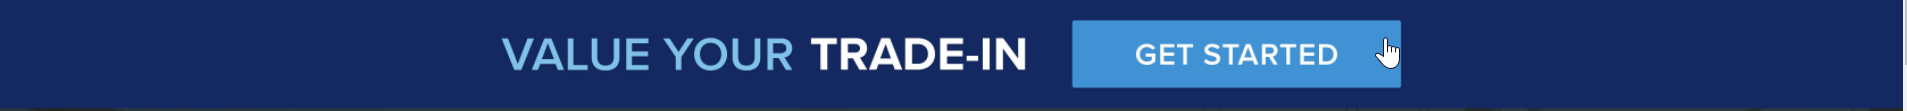 Trade-in banner